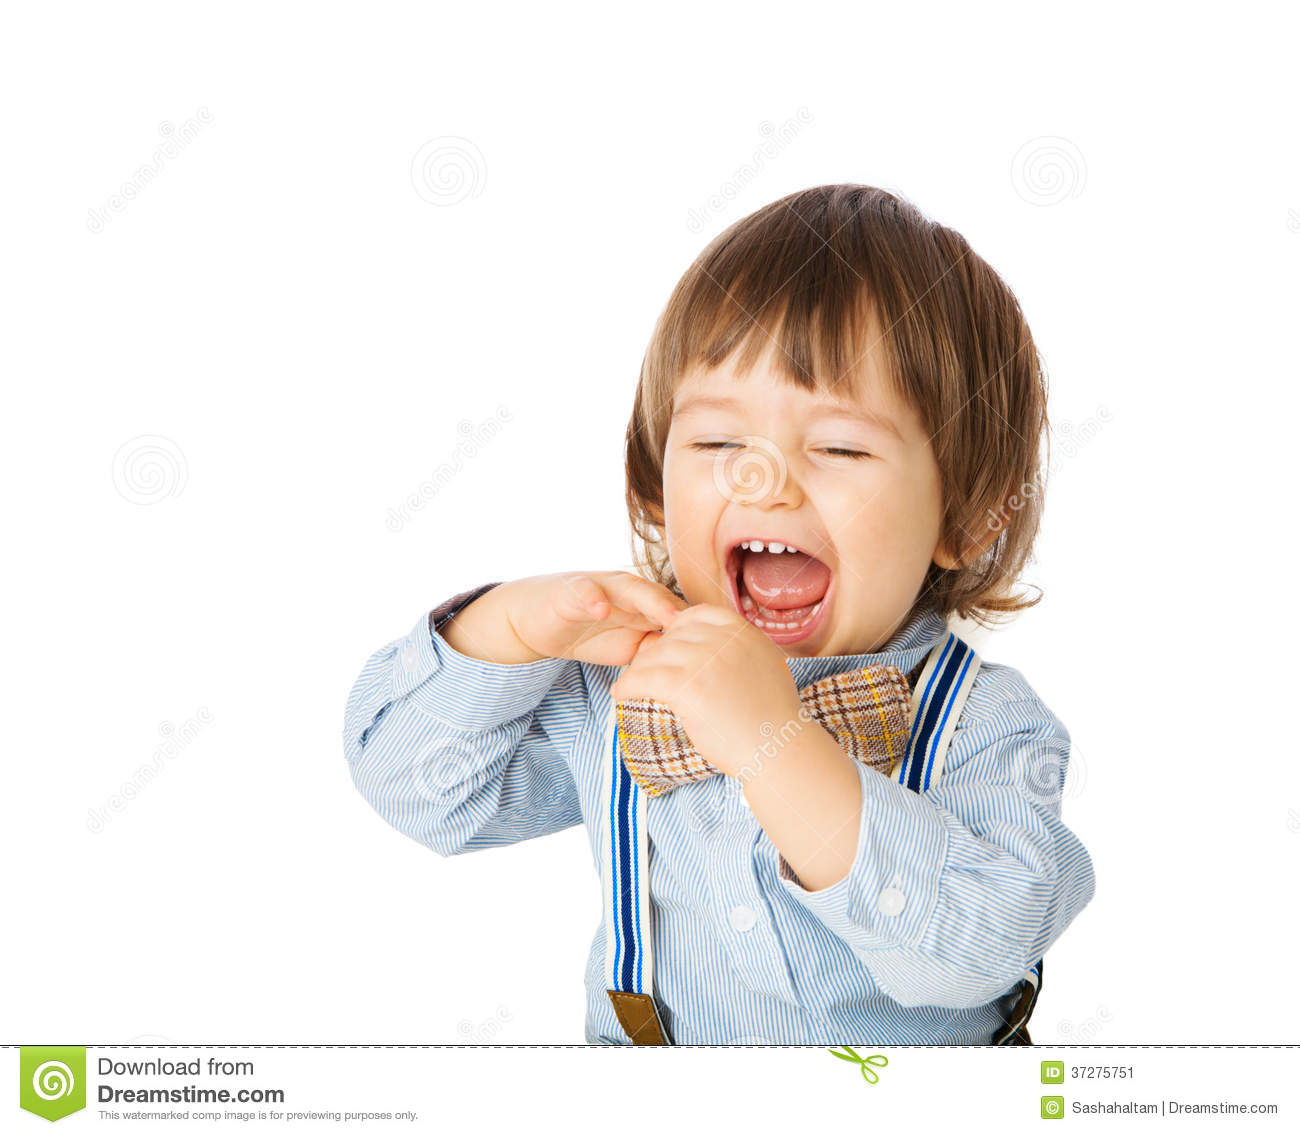 Funny Cheerful Baby Stock Image - Image: 37275751